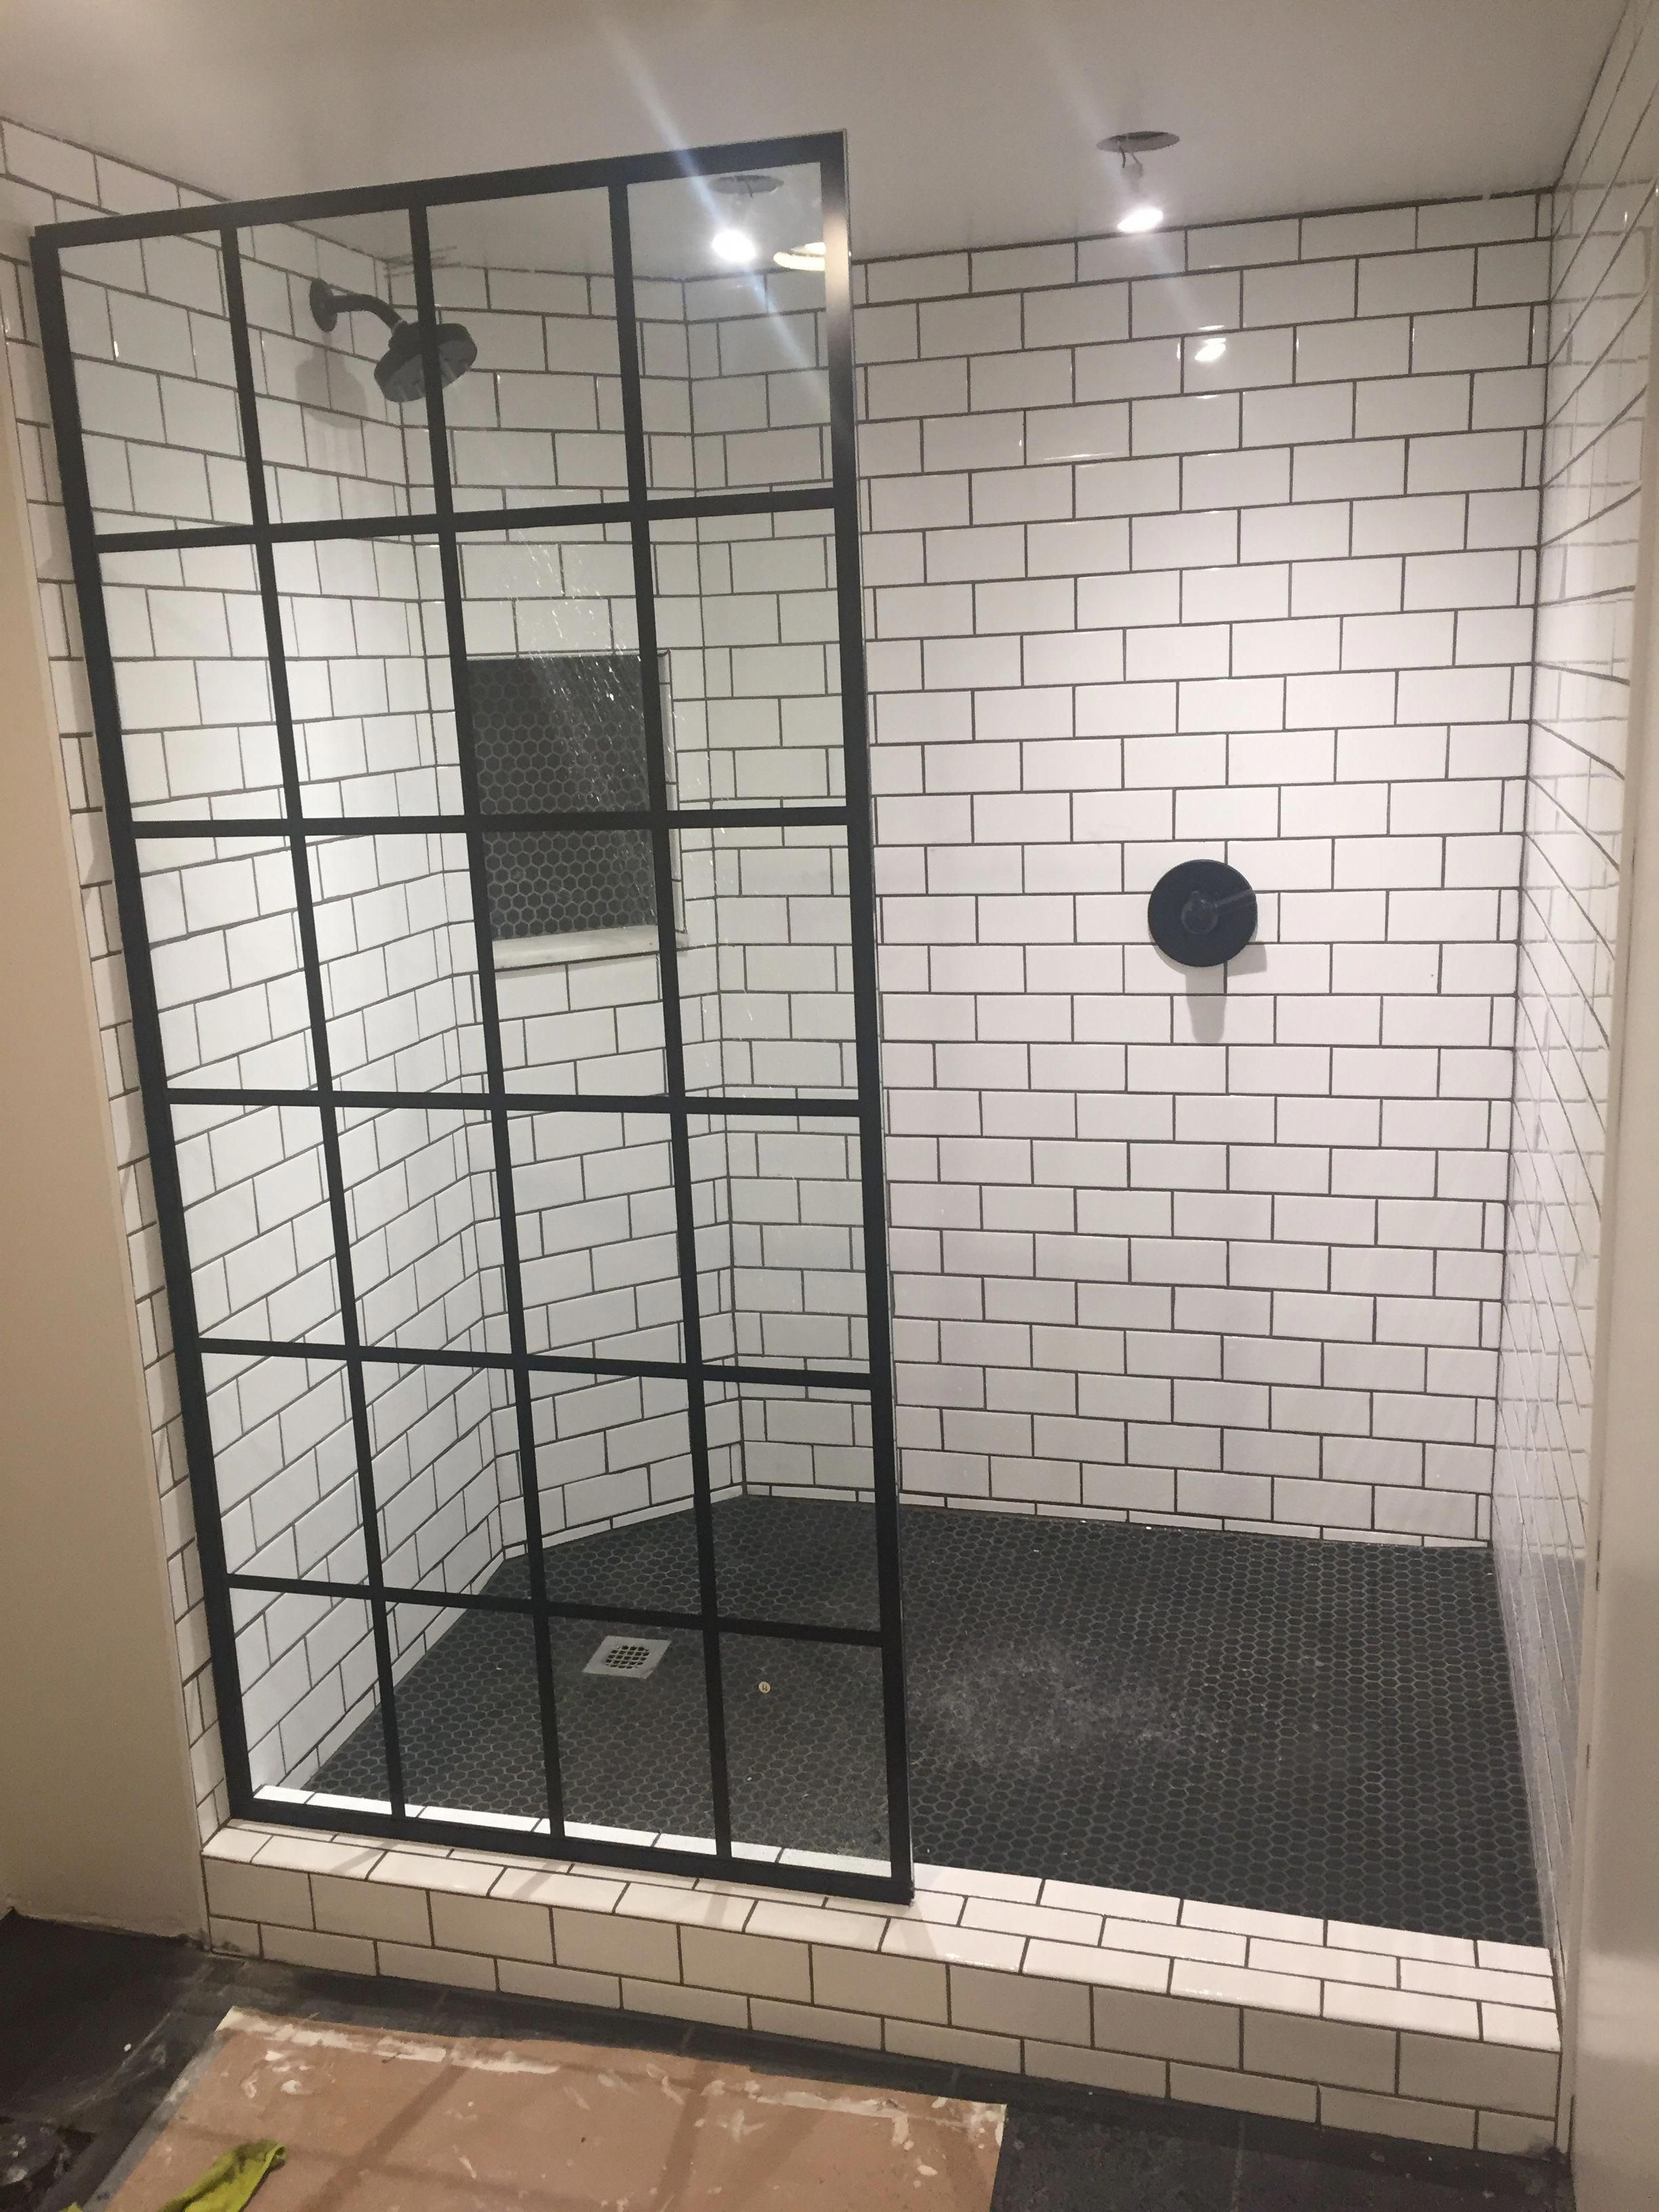 Diy Shower Pan Subway Tile Hex Tile Renovation Mastersuiteremodel